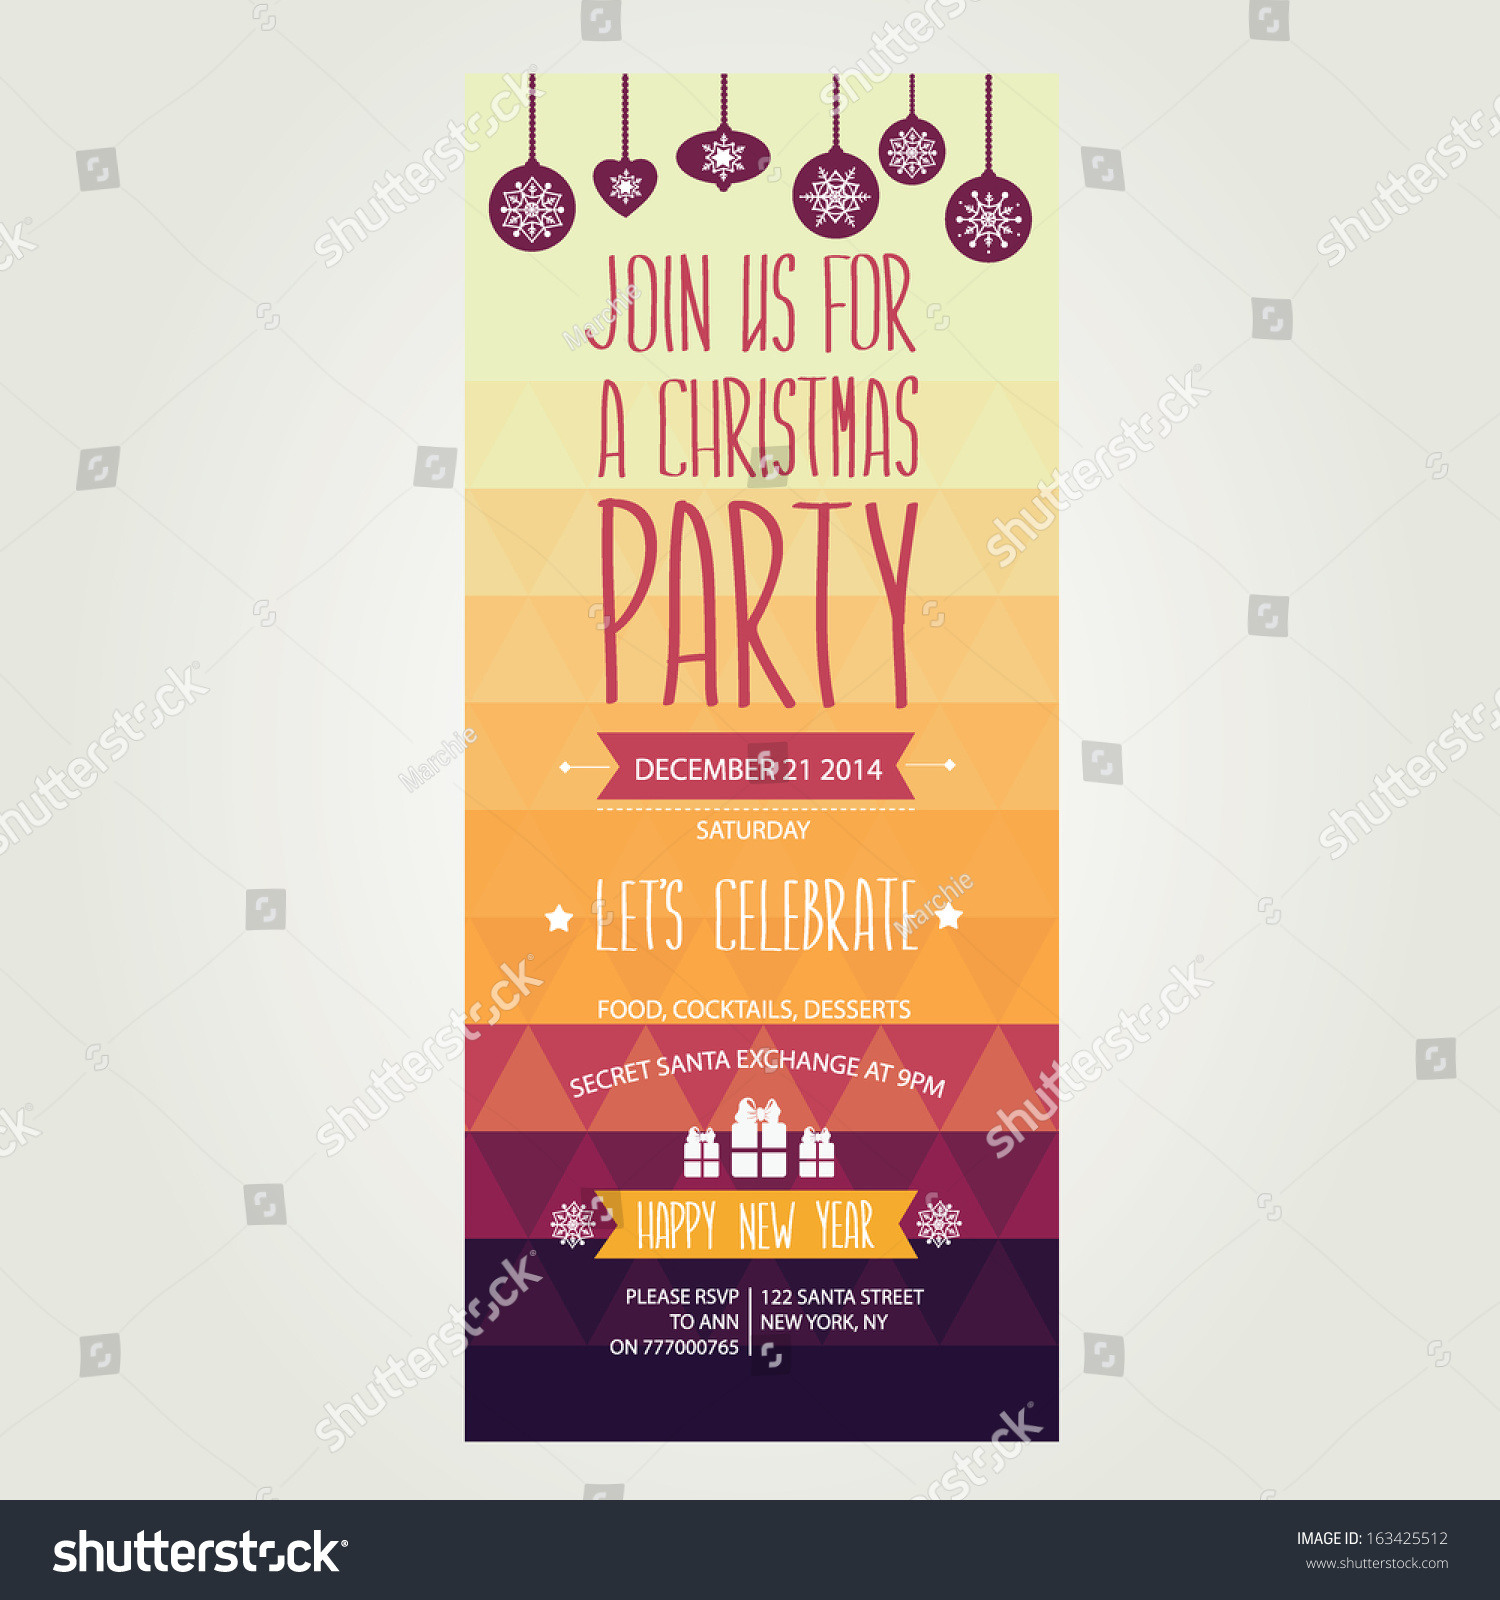 Vector Christmas Party Invitation Toys Holiday Stock Vector ...